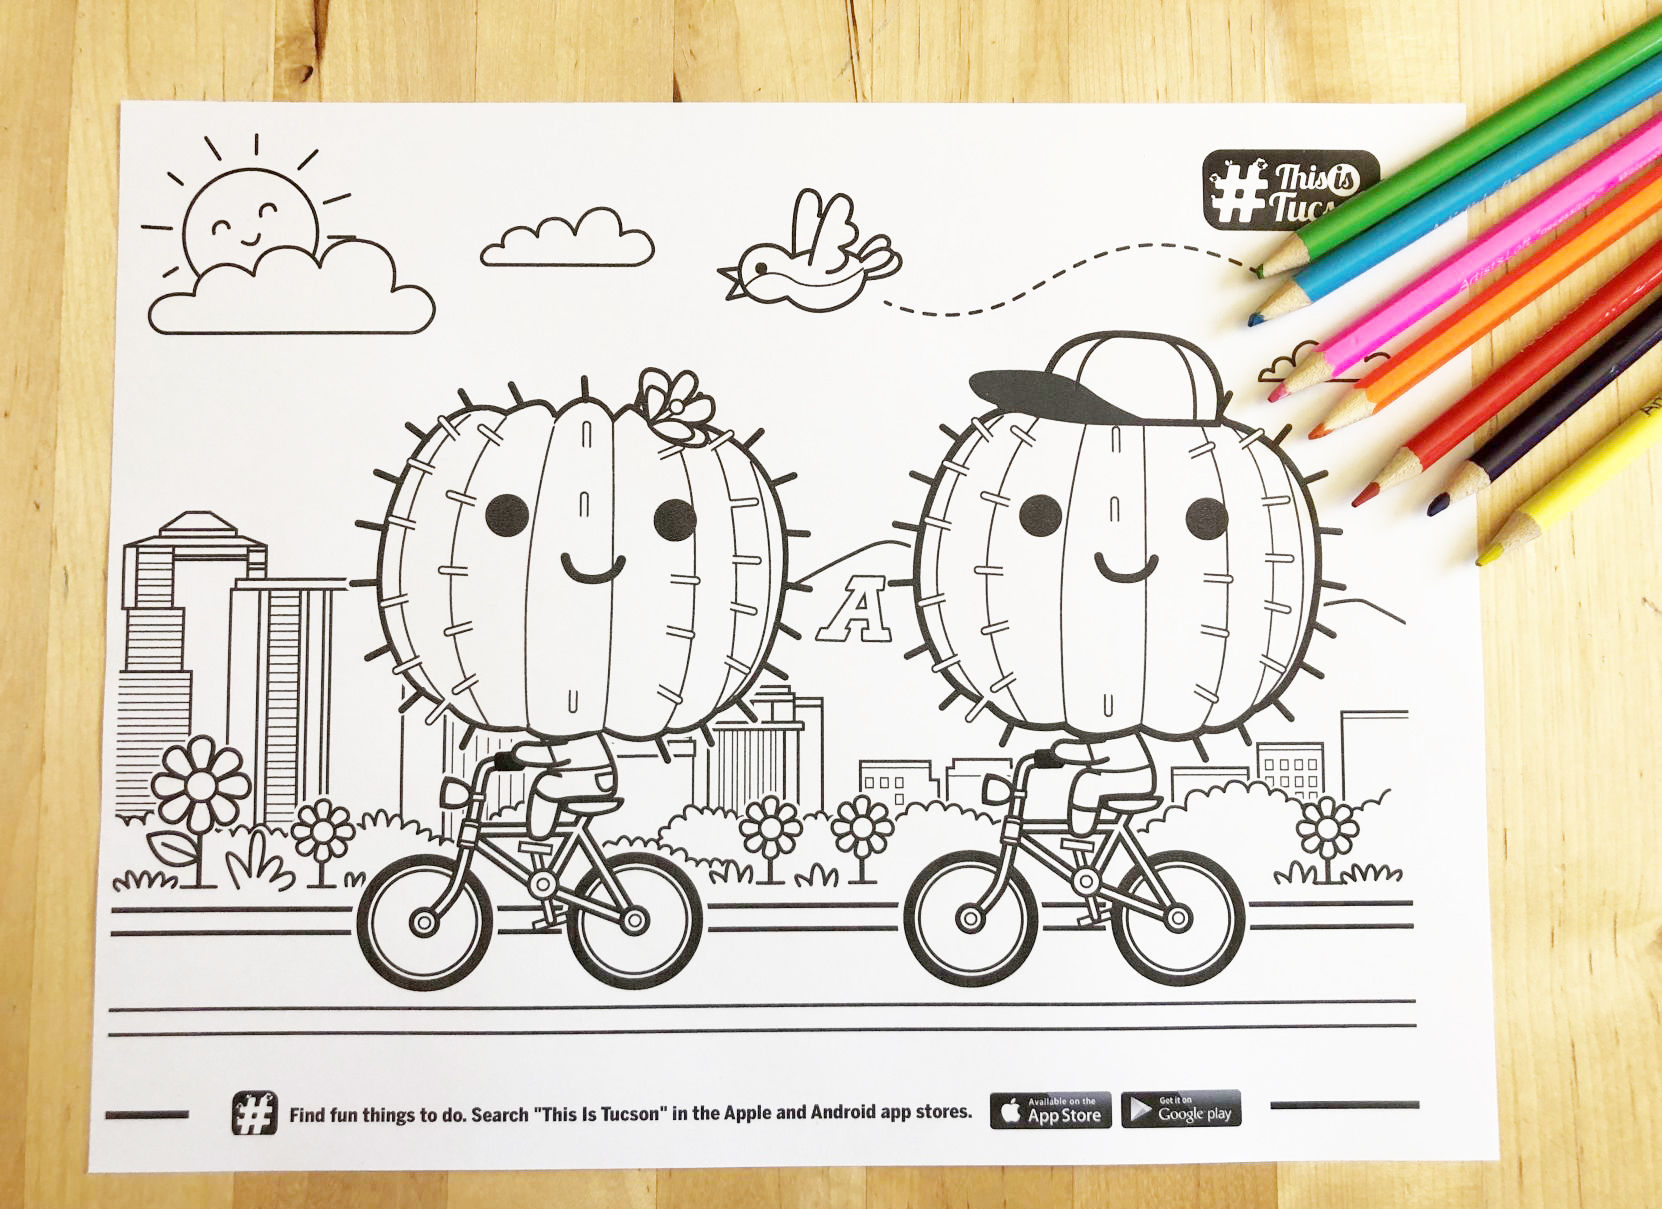 - De-stress At Home With Free Coloring Pages Made By Tucson Artists